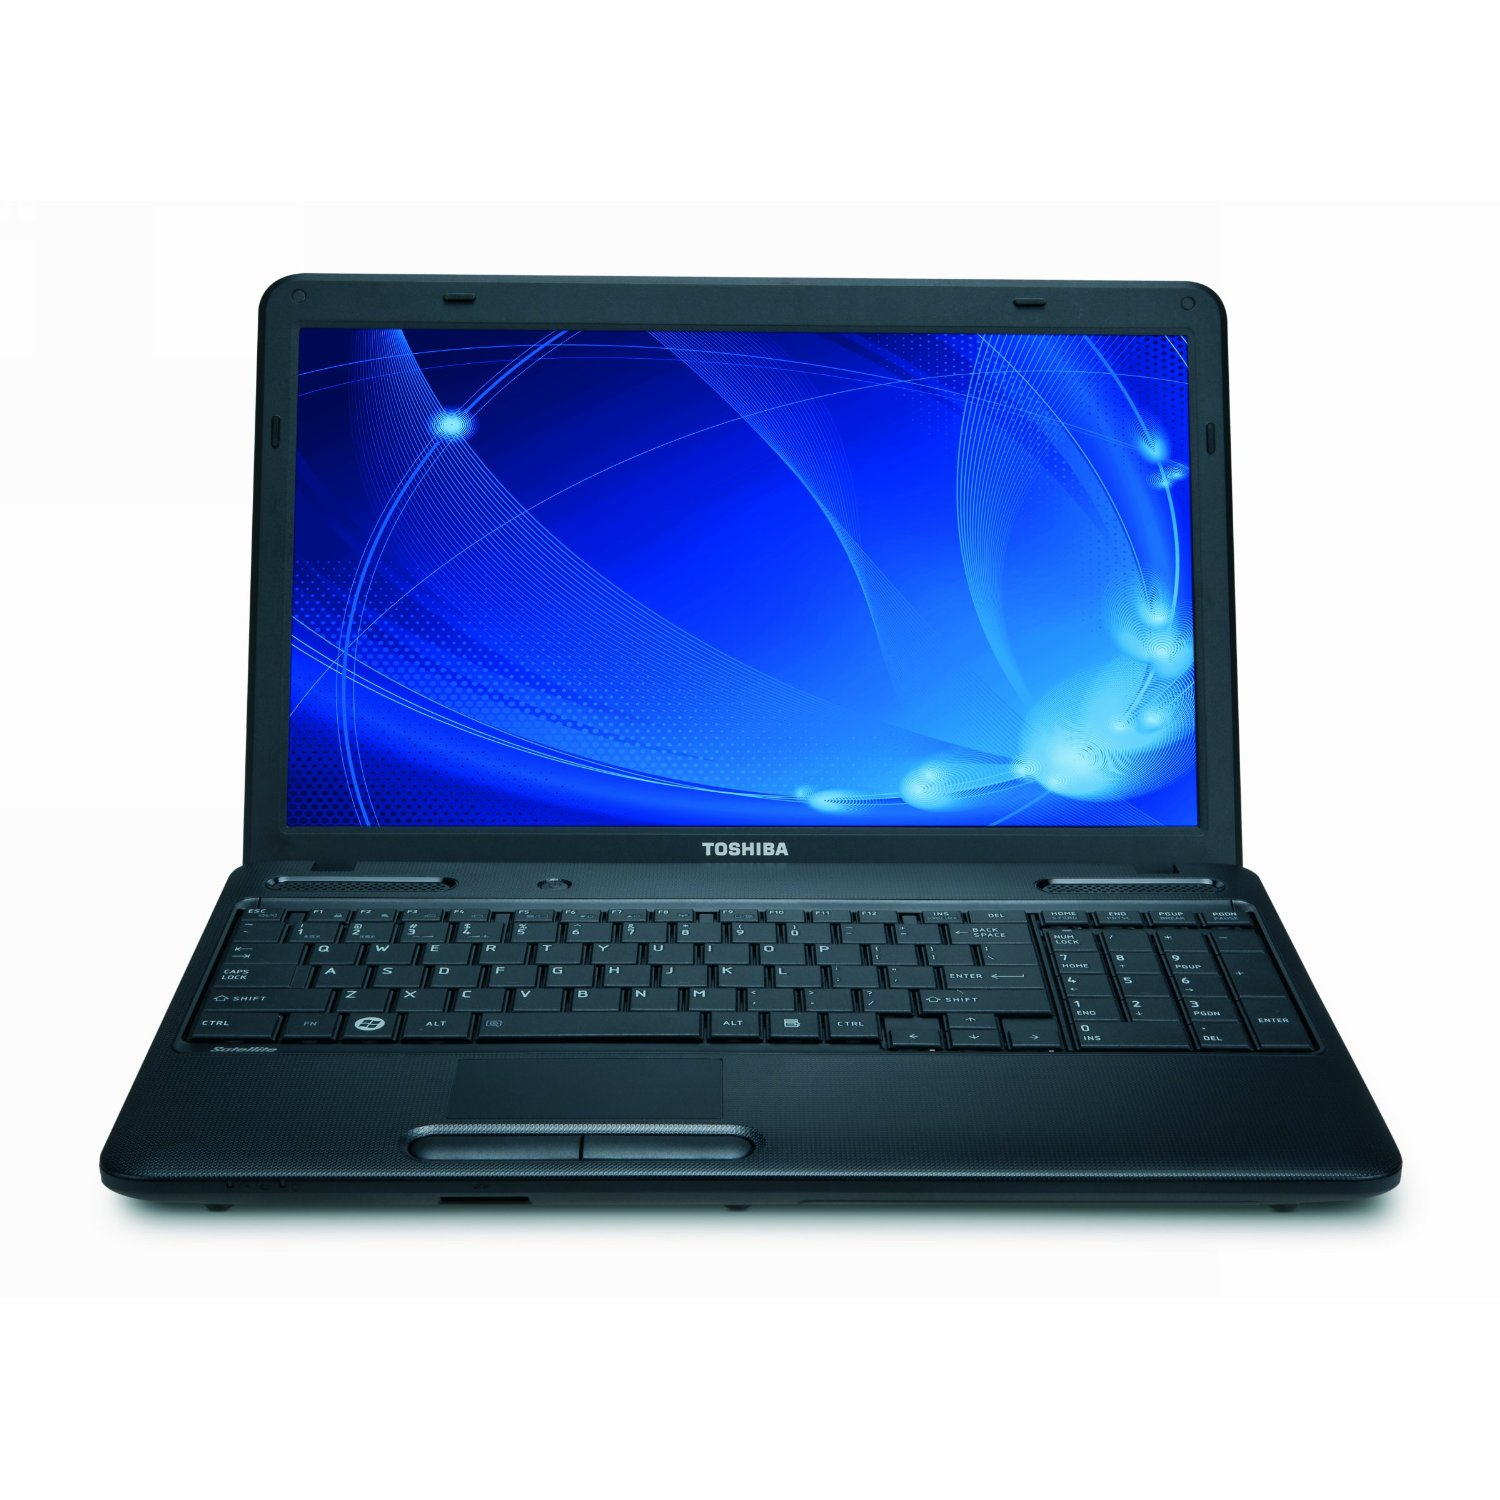 Drivers for A Toshiba Satellite